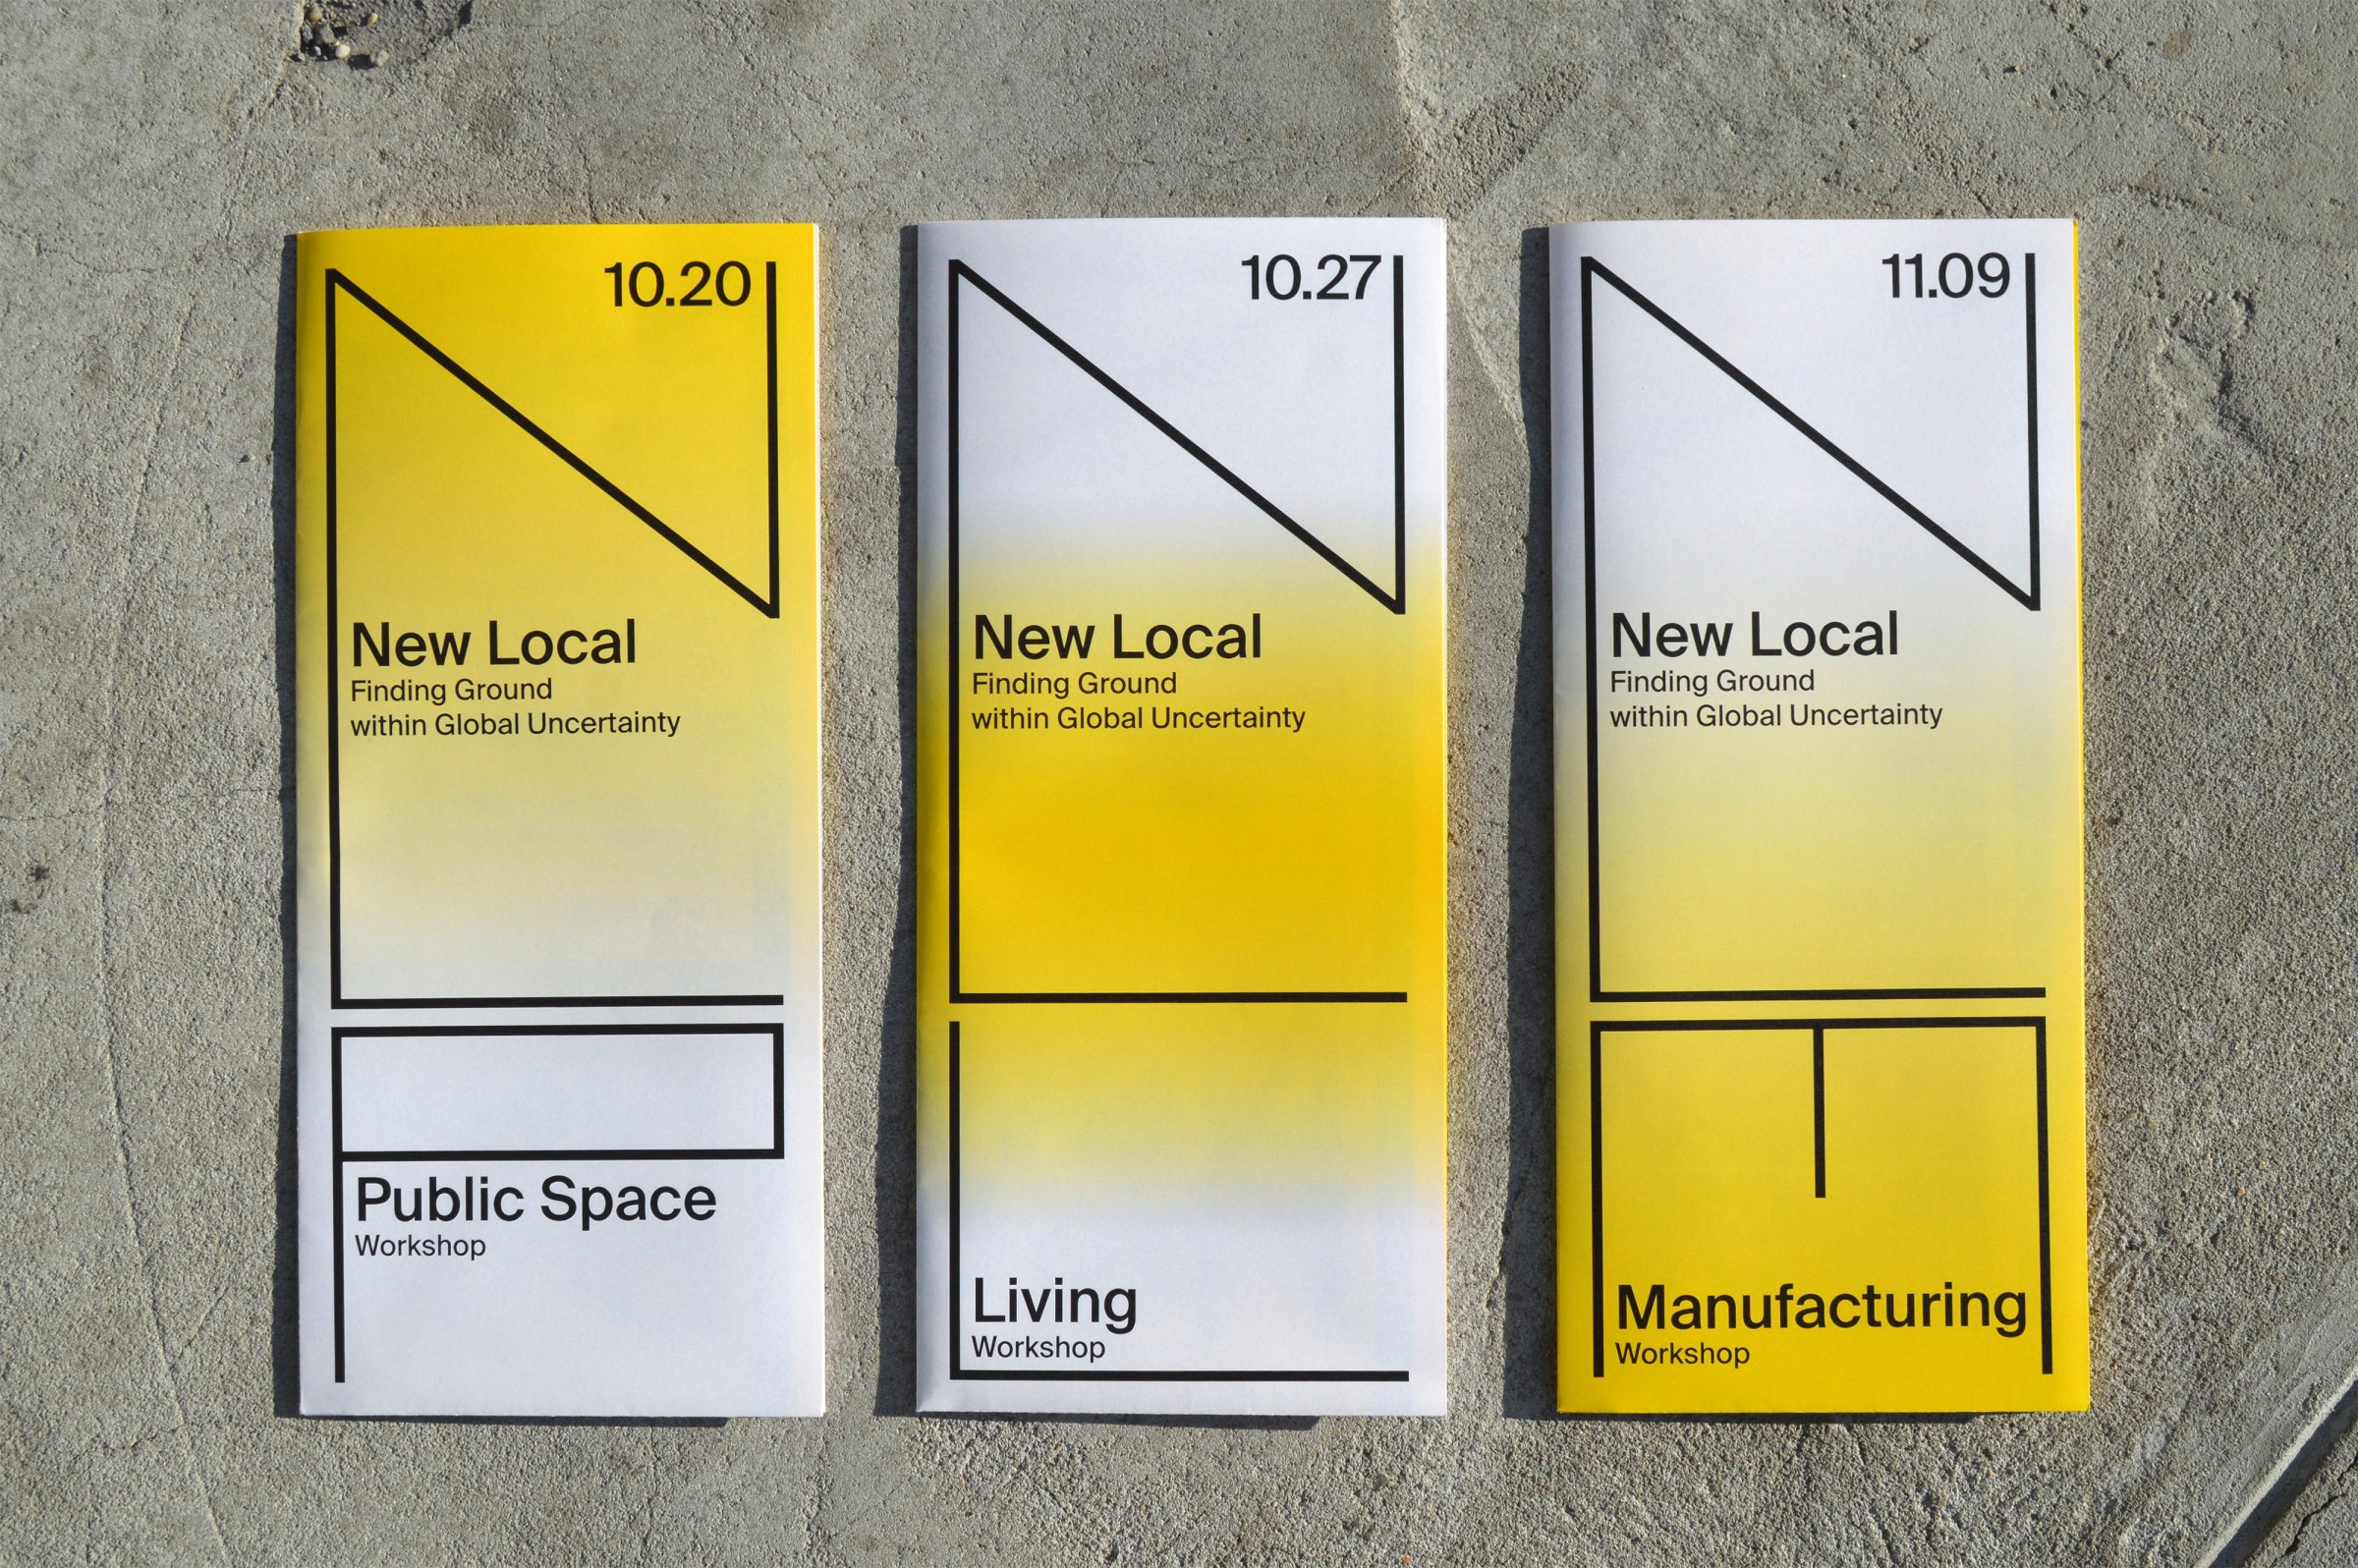 WeShouldDoItAll — AIA New Local